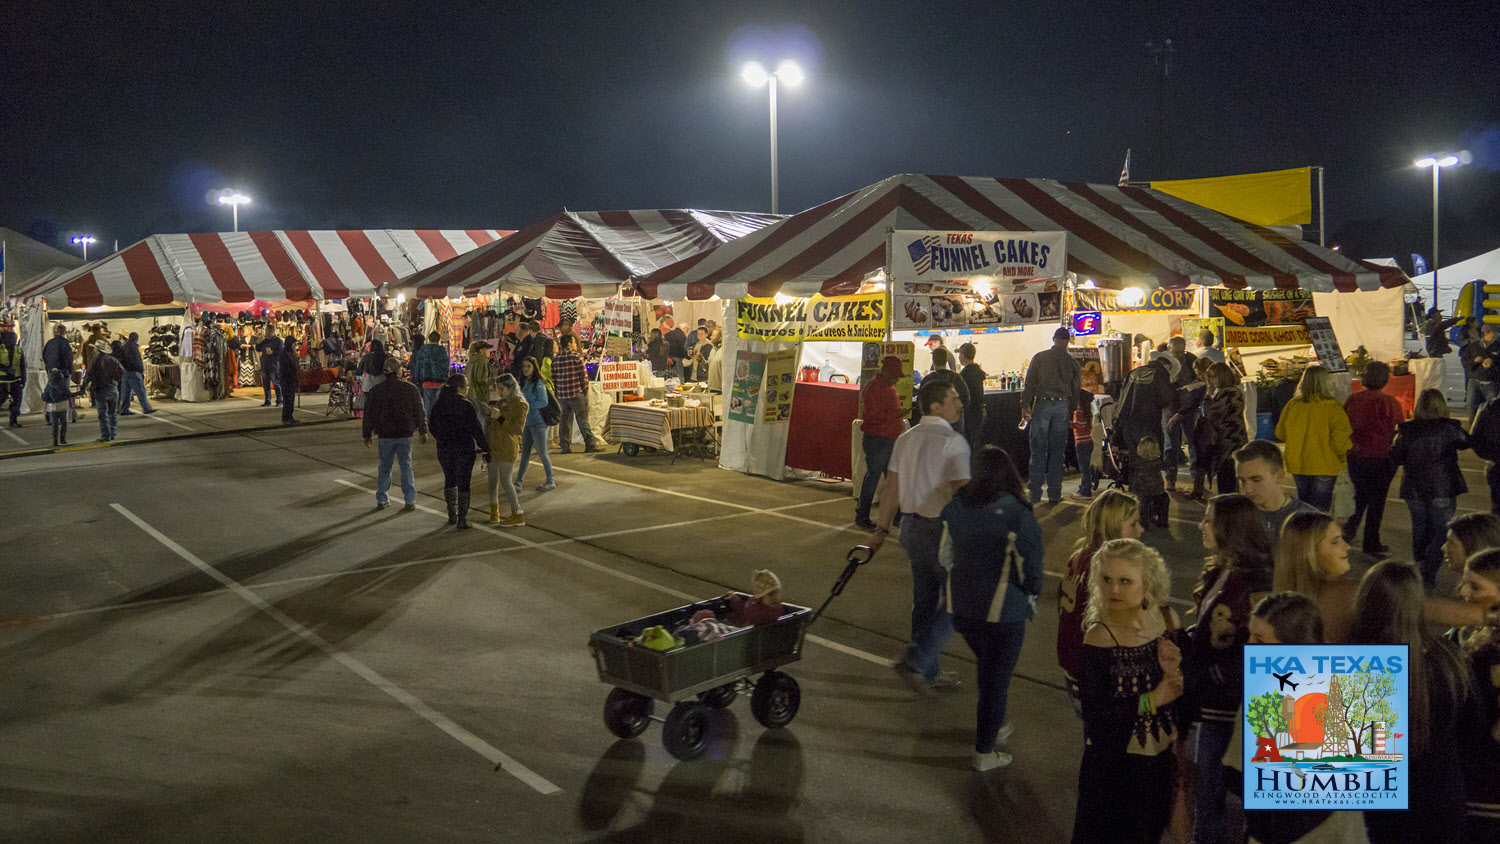 & Humble Rodeo BBQ Cook-Off (Photos) 1/30/2015